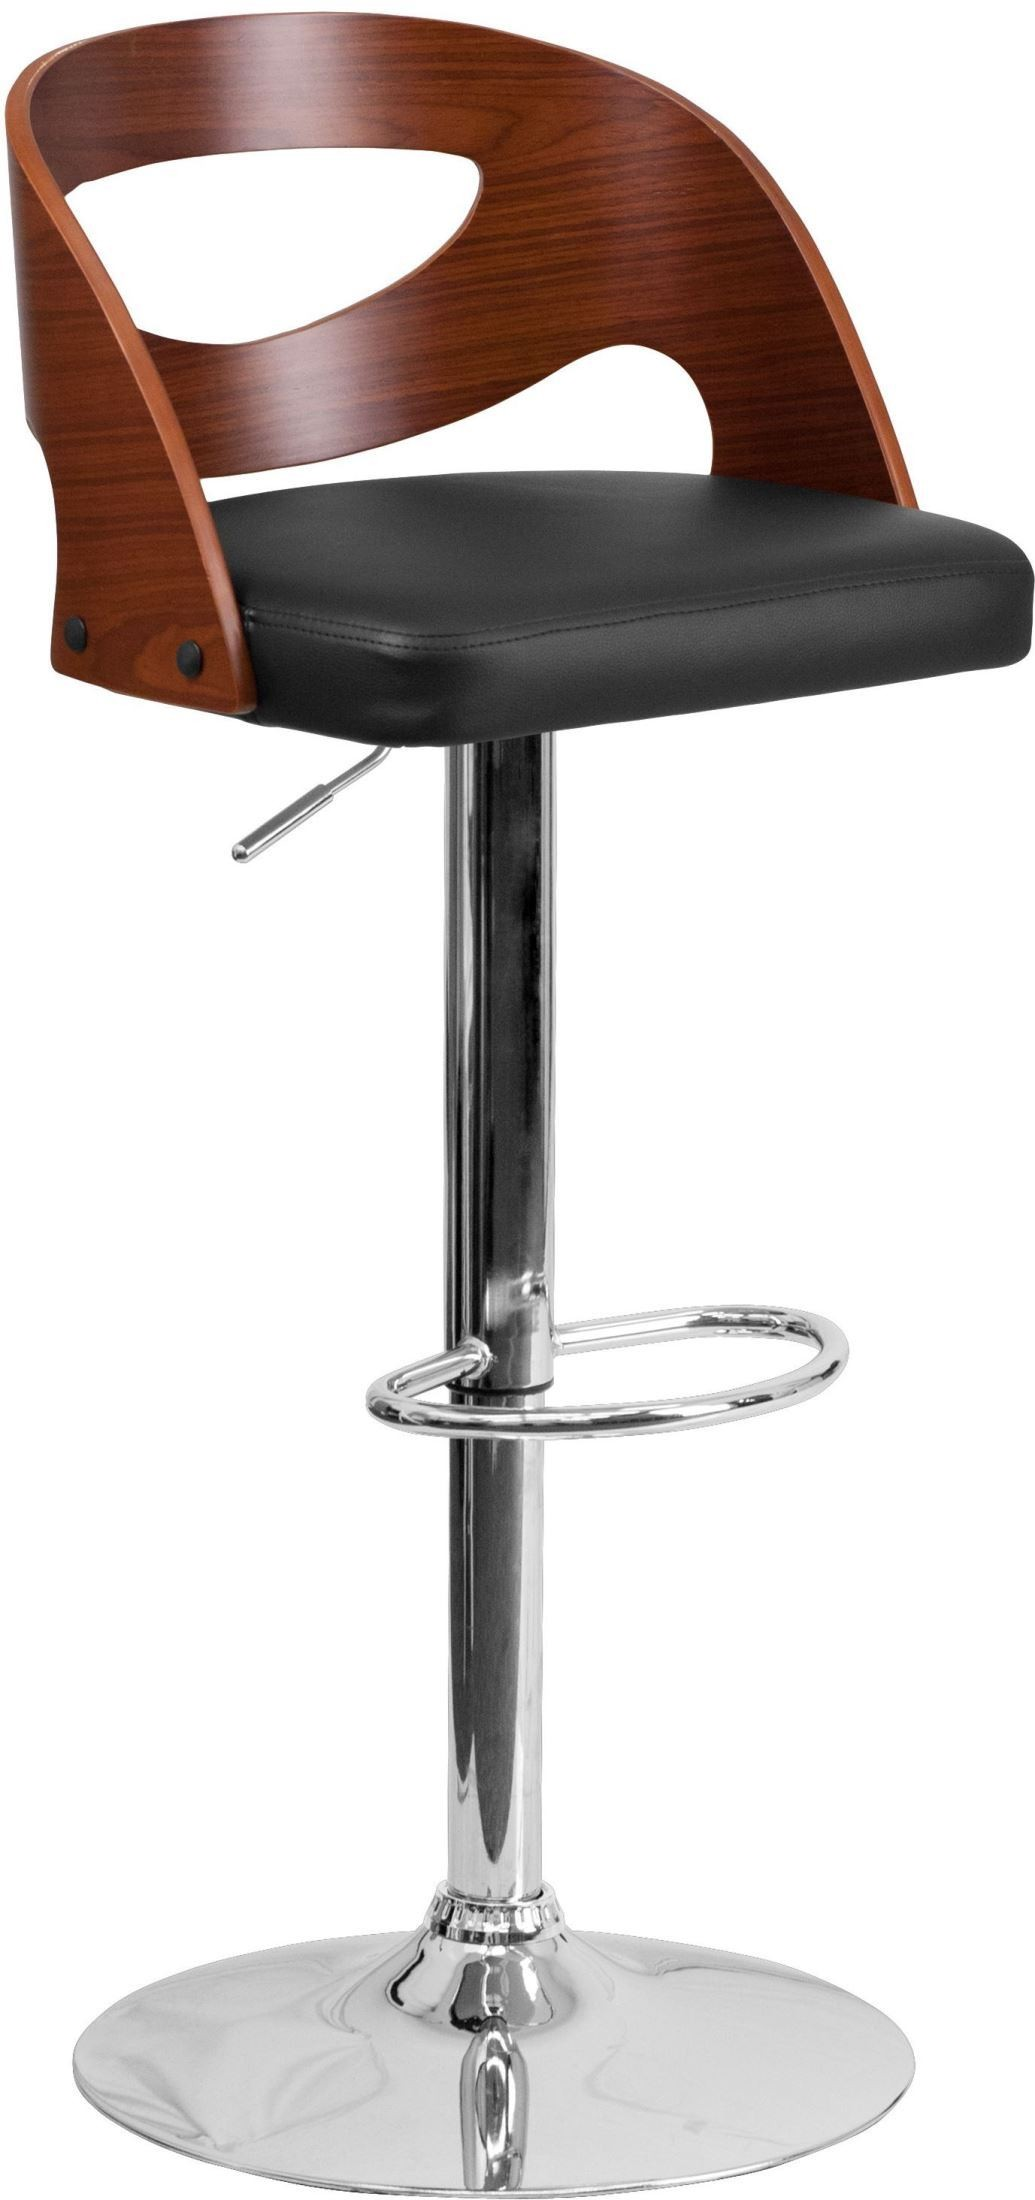 32381 Walnut Bentwood Adjustable Height Bar Stool From